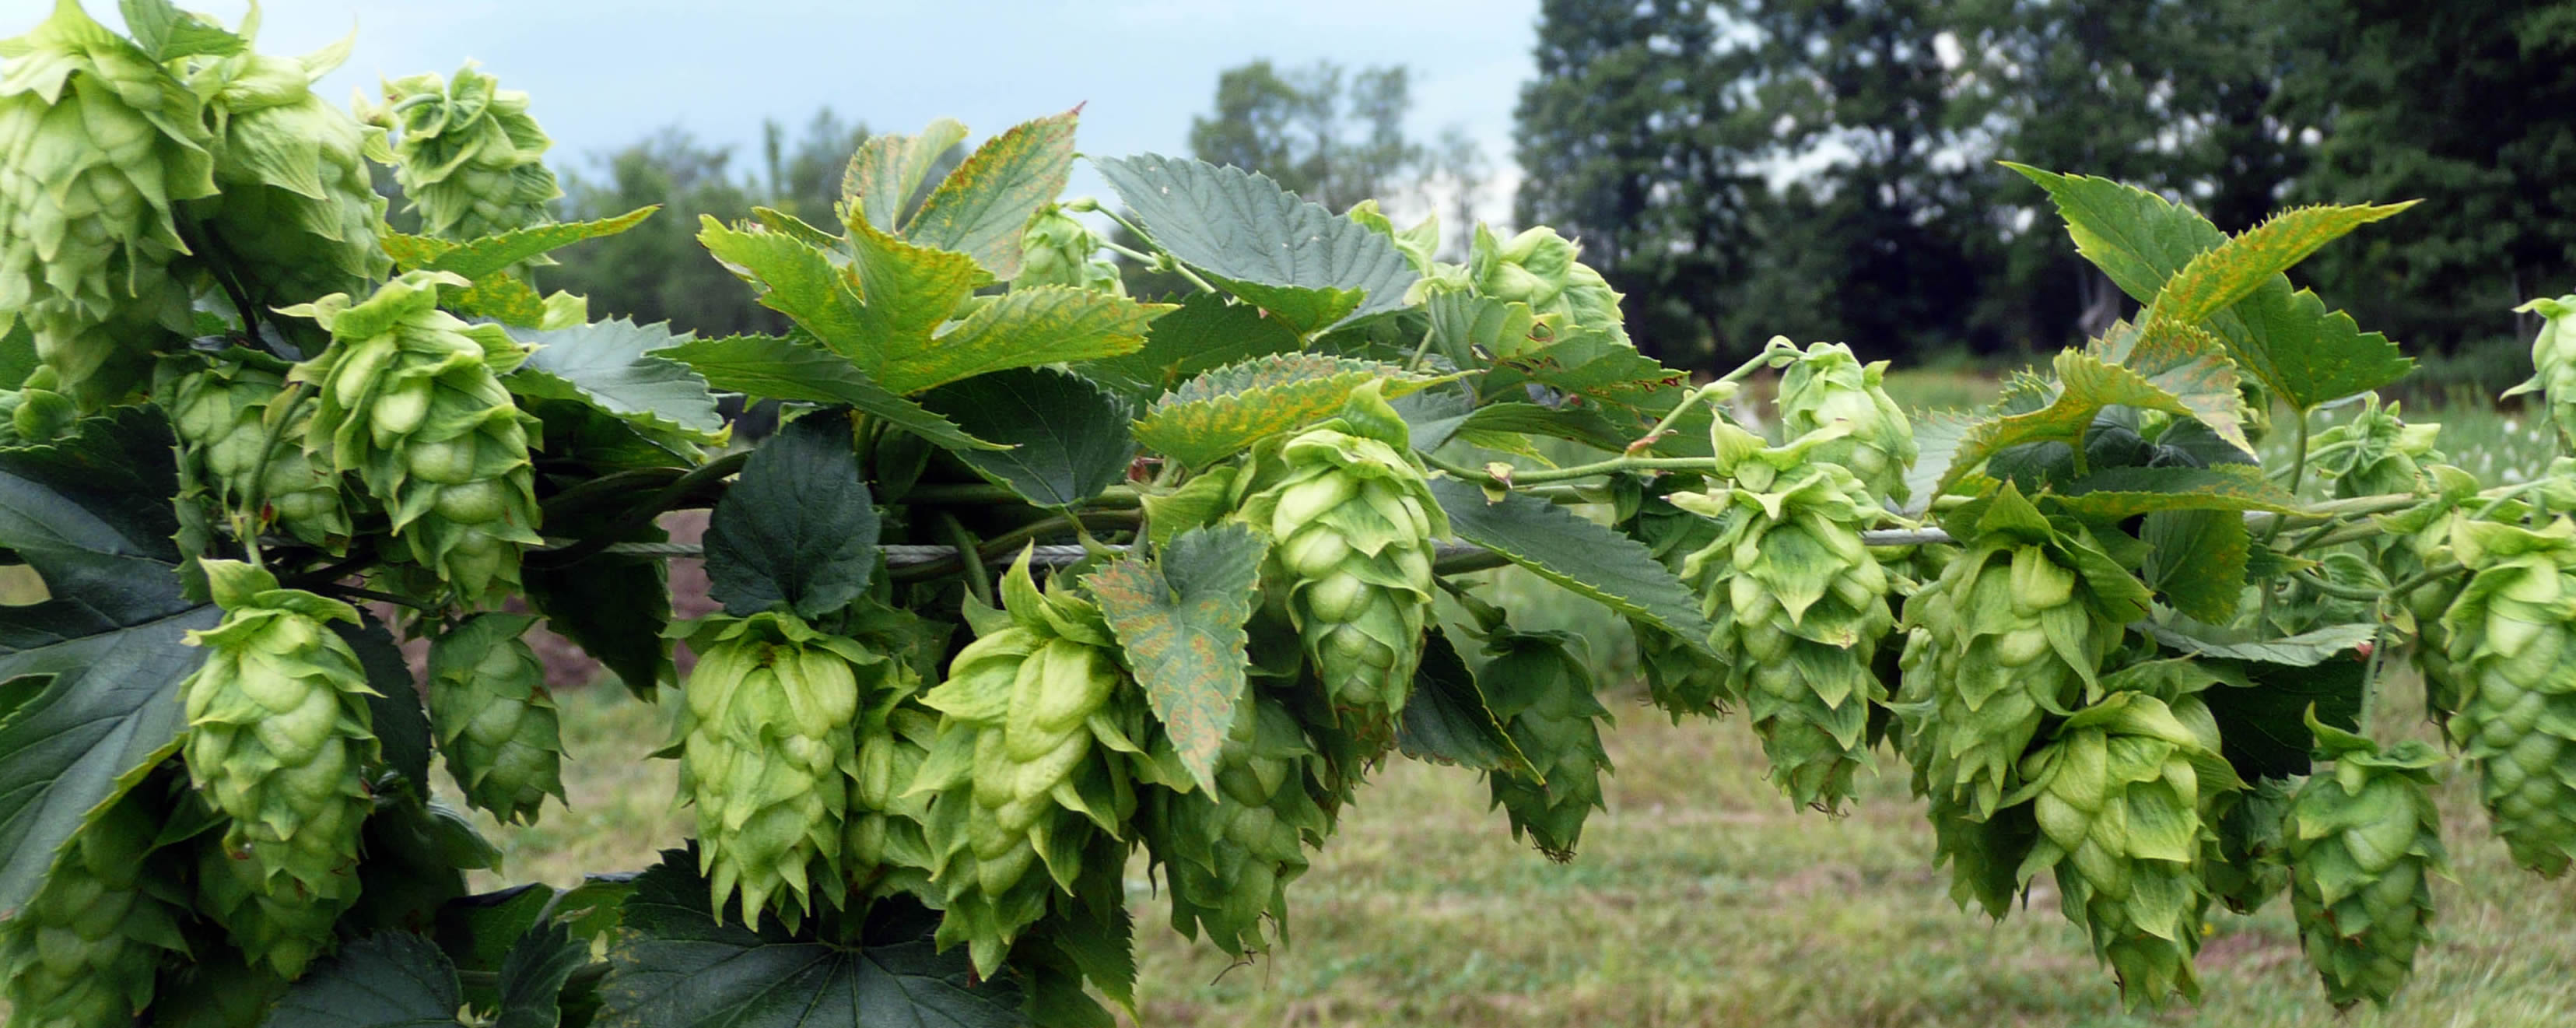 Grow your own hops hops picture